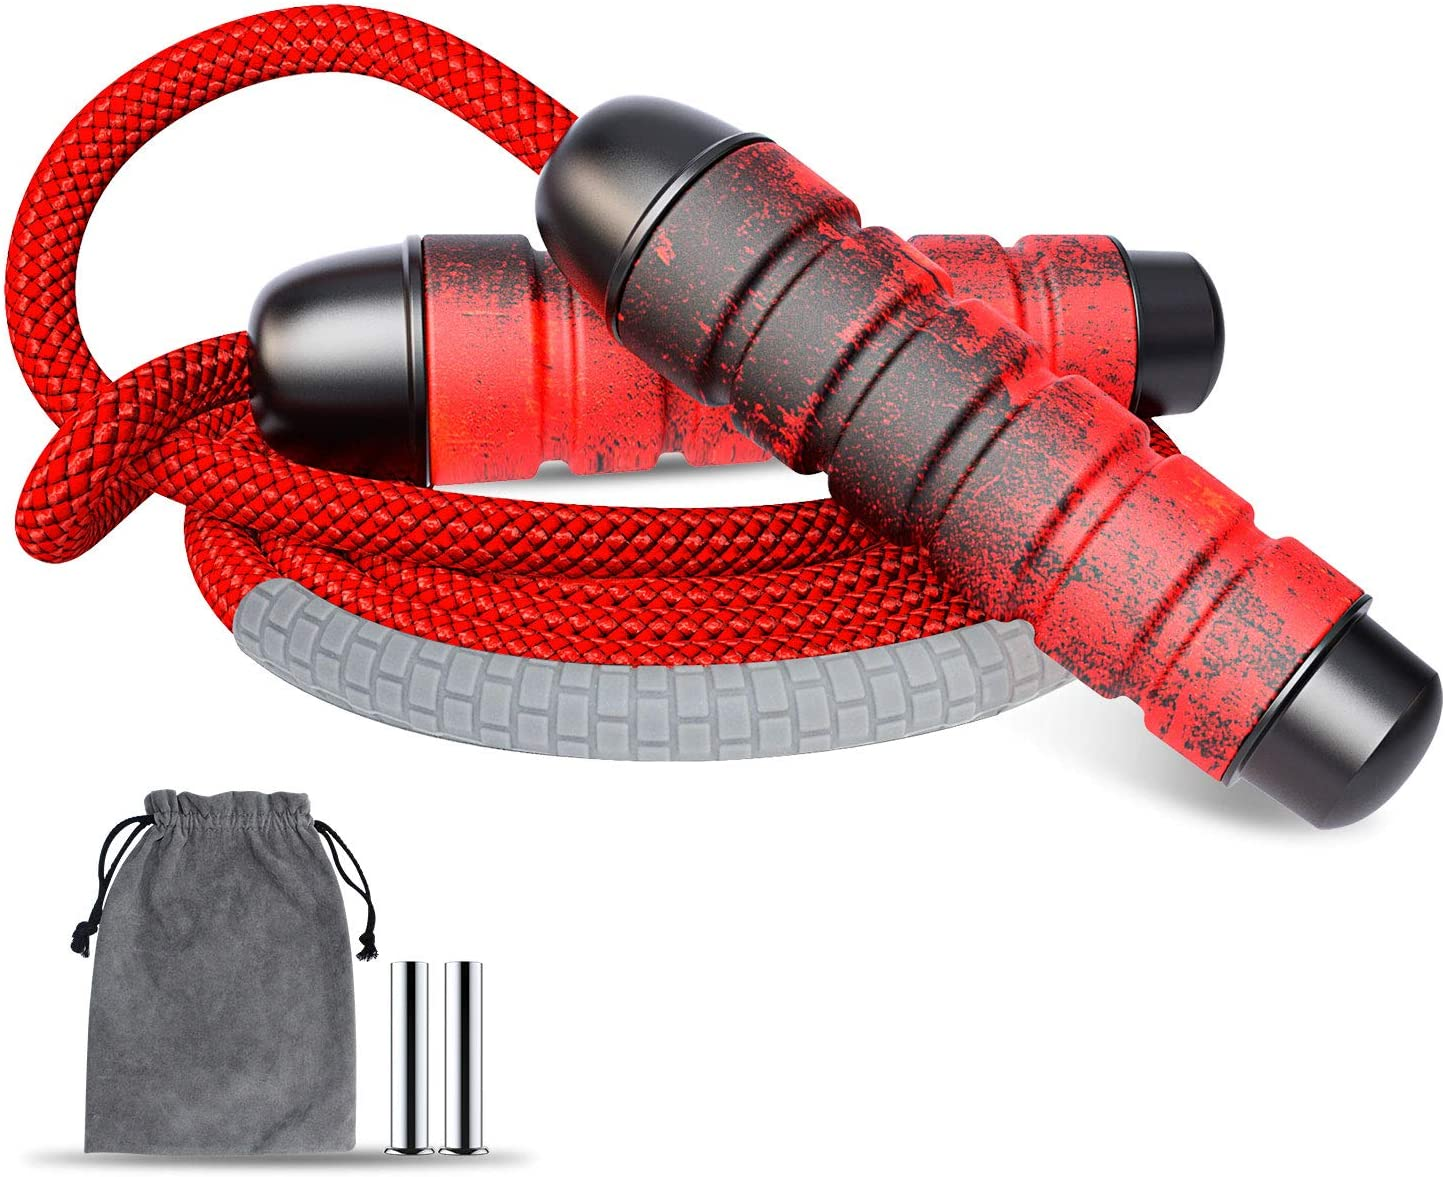 Comsoon Jump Rope, Tangle-Free Adjustable Jumping Rope with Ball Bearings, Durable Skipping Rope with Memory Foam Handles & Weight Blocks for Fitness Workout Cardio Endurance Training